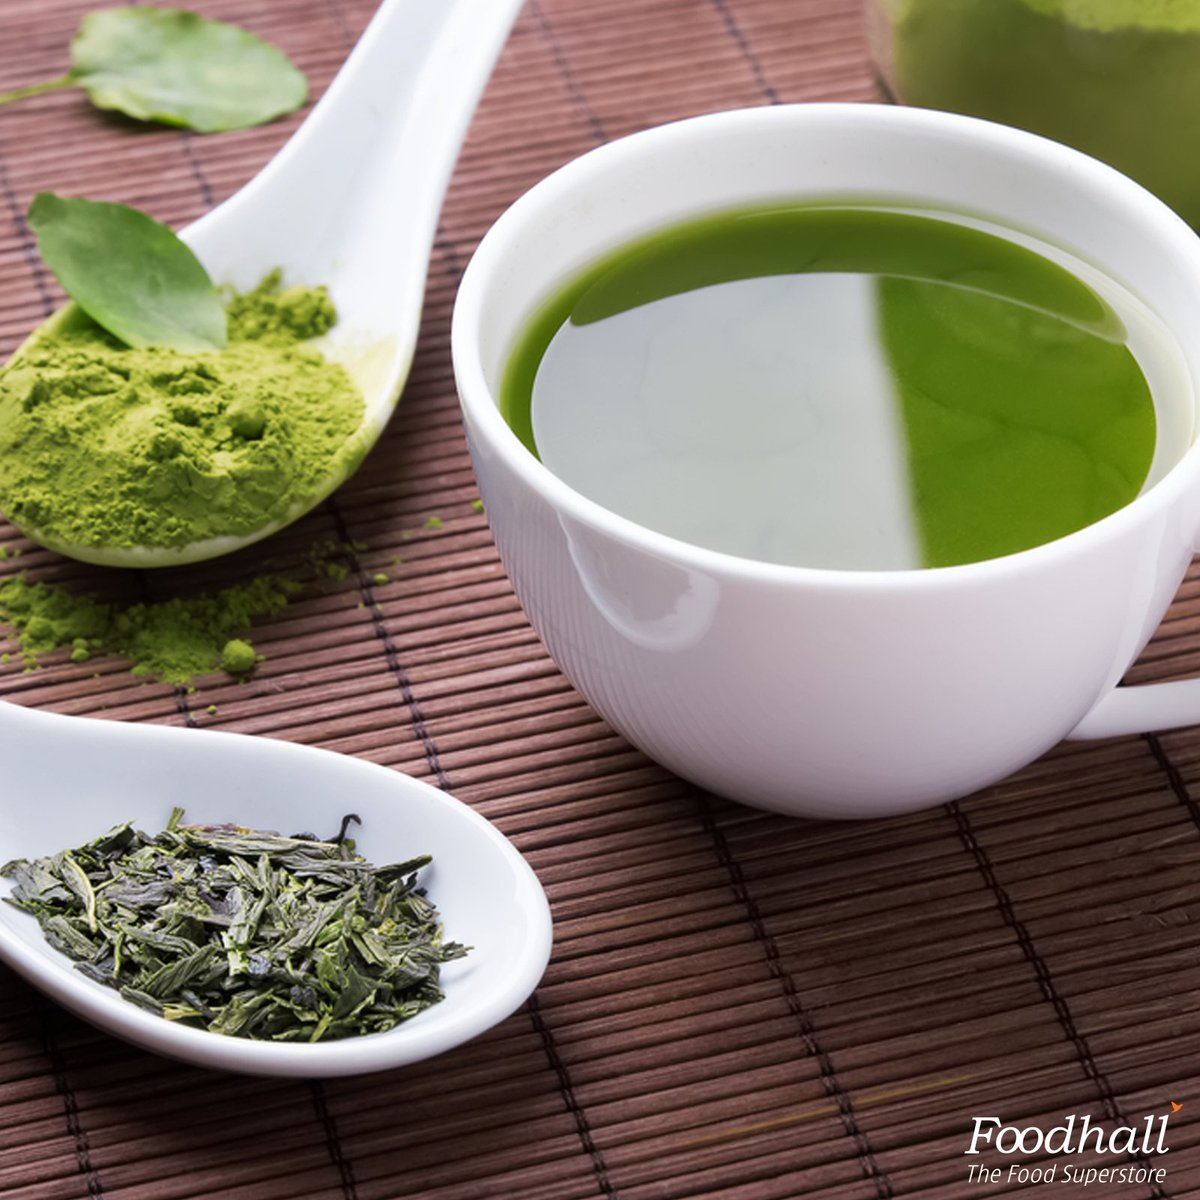 Blessed with antioxidants, Matcha #tea & your favourite novel is the gateway to a relaxing evening. https://t.co/bwEgwUJaK0